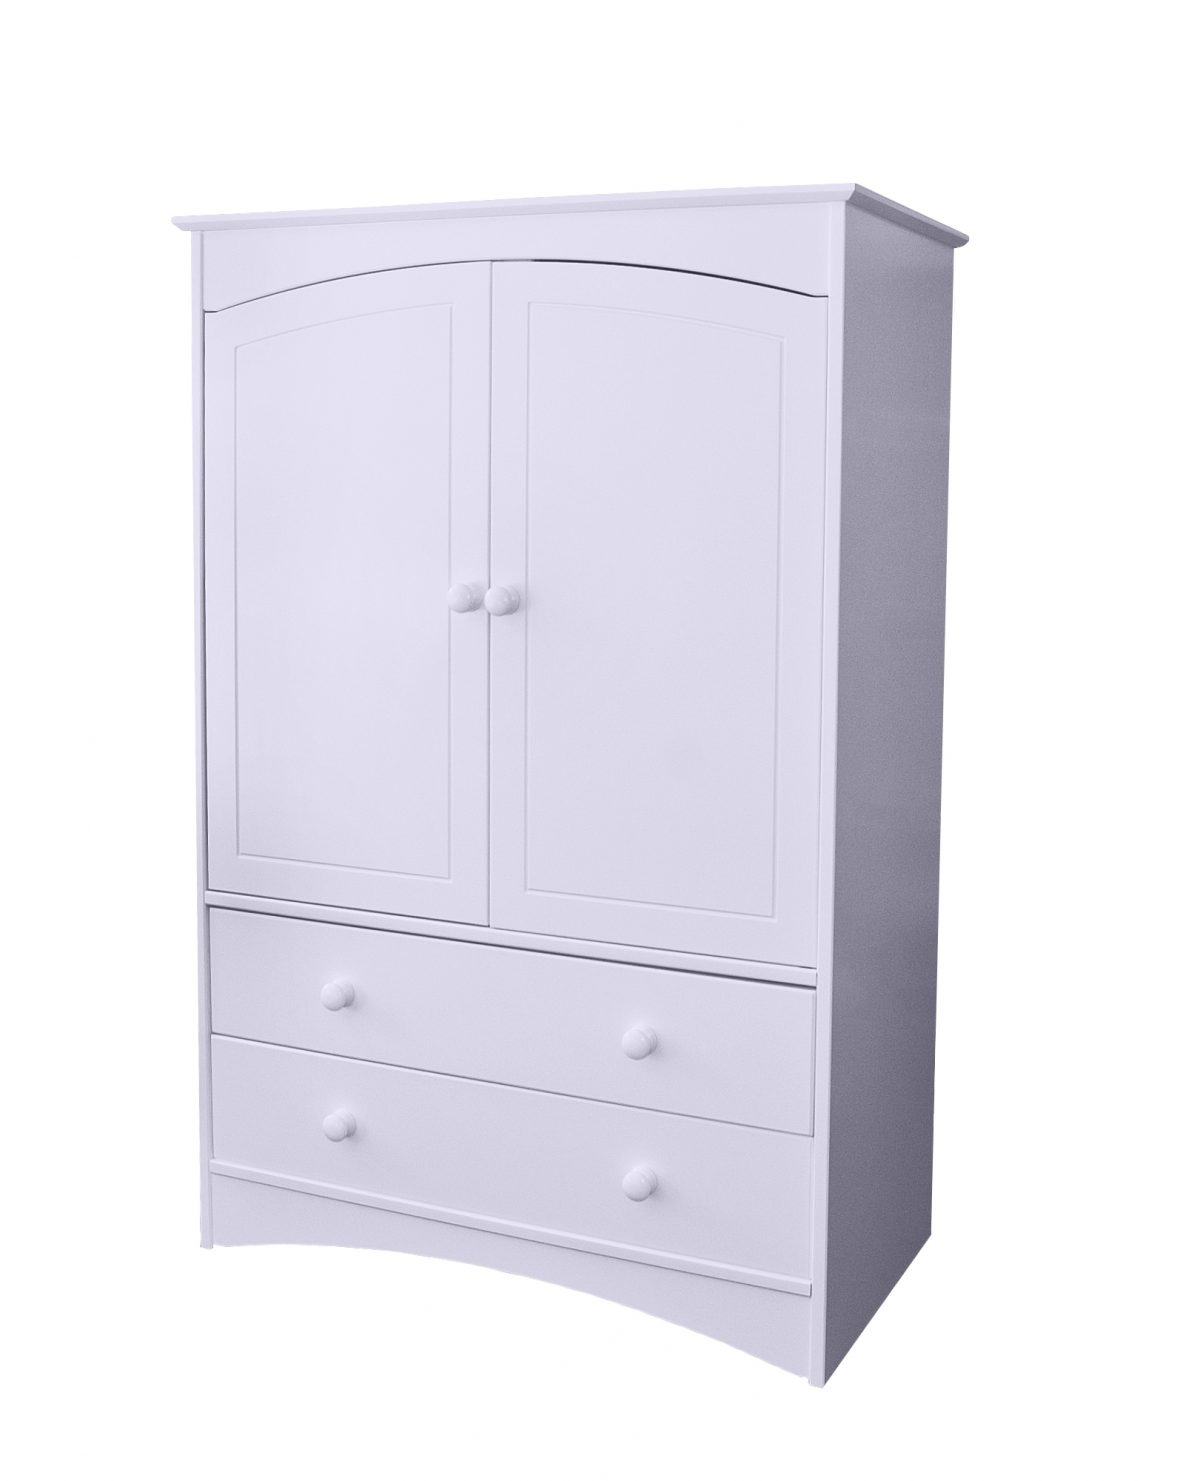 Elfin Small 2 Drawer Wardrobe Lavender Hill